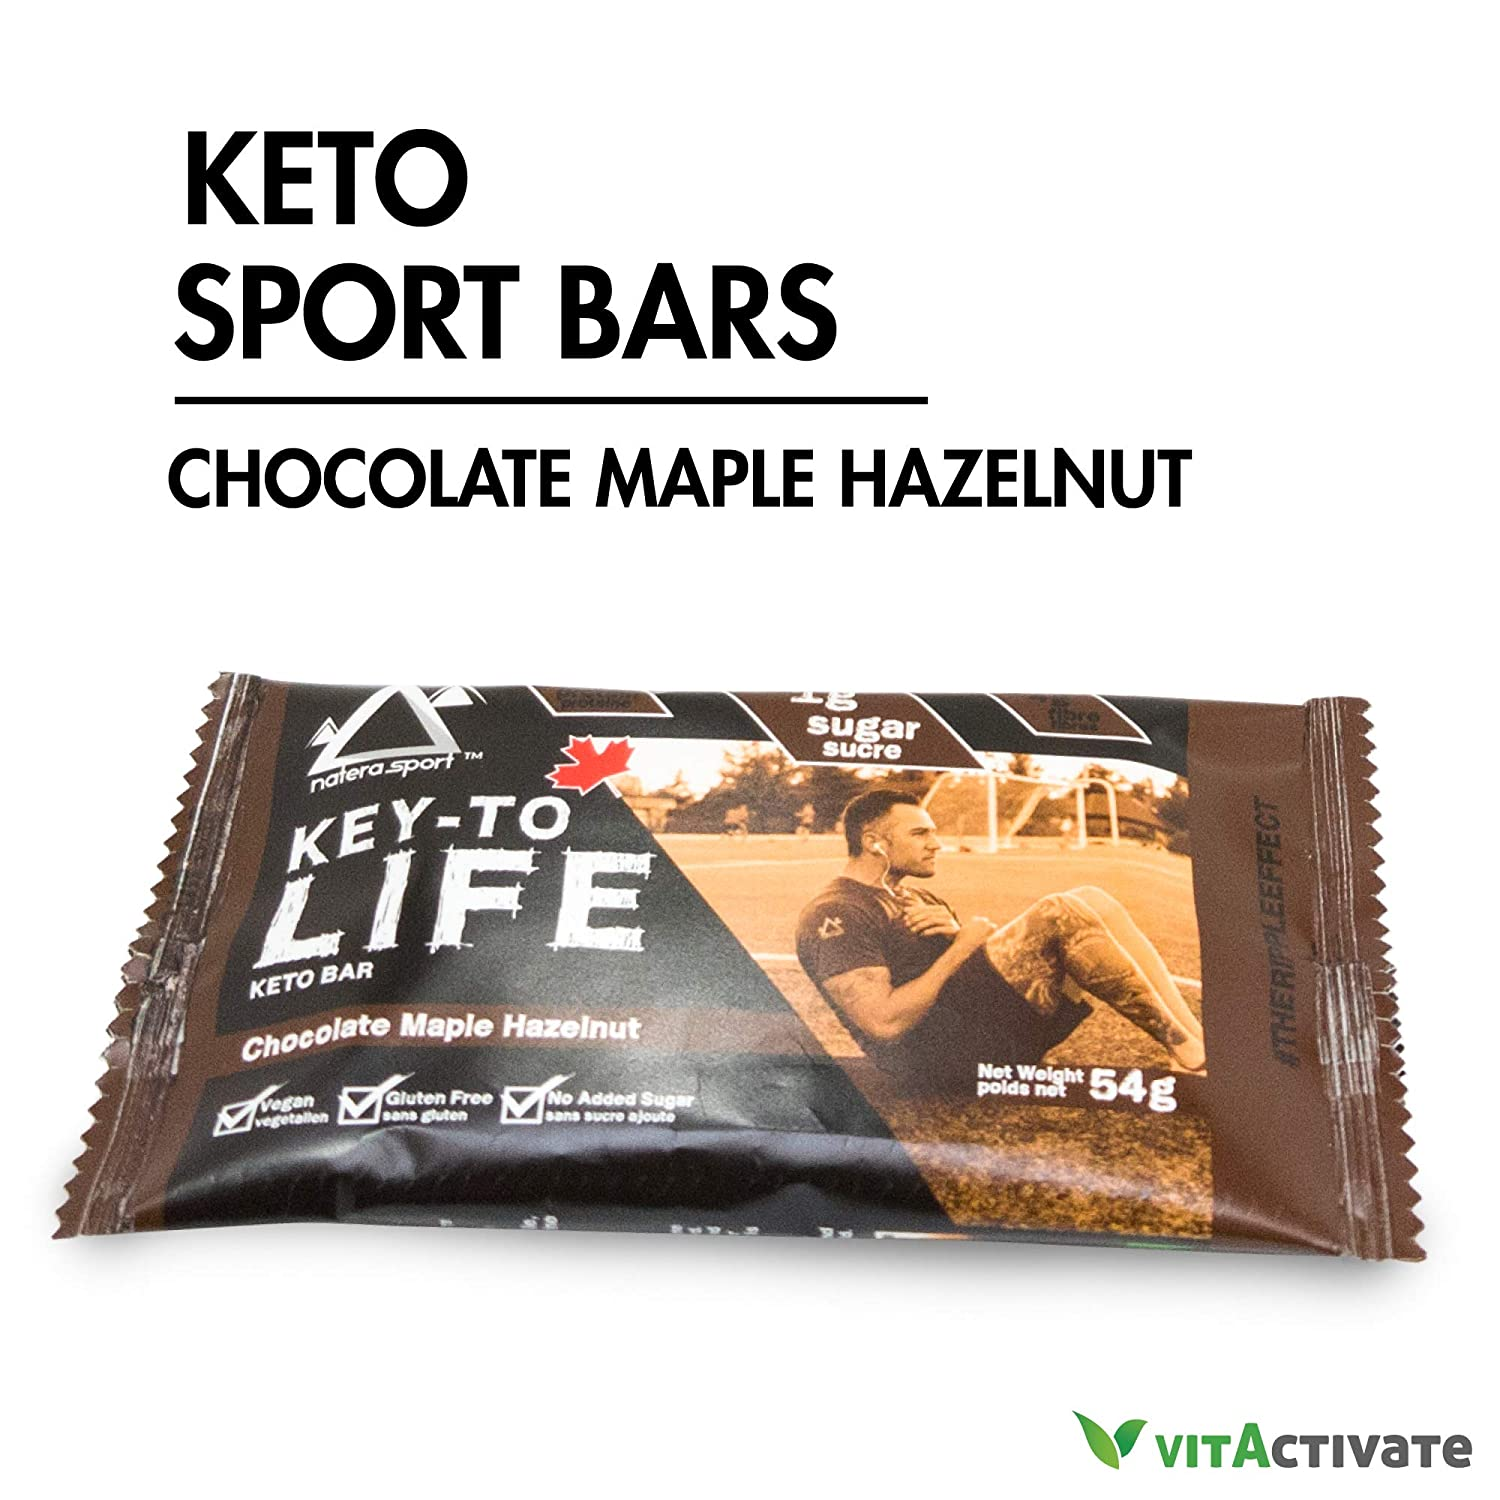 Keto Snack 12 Pieces Chocolate Maple Protein Bars, NATERA Ketogenic Food Supplement Energy Bar, Low Carbs, Low Sugar Pre-Workout Cookies